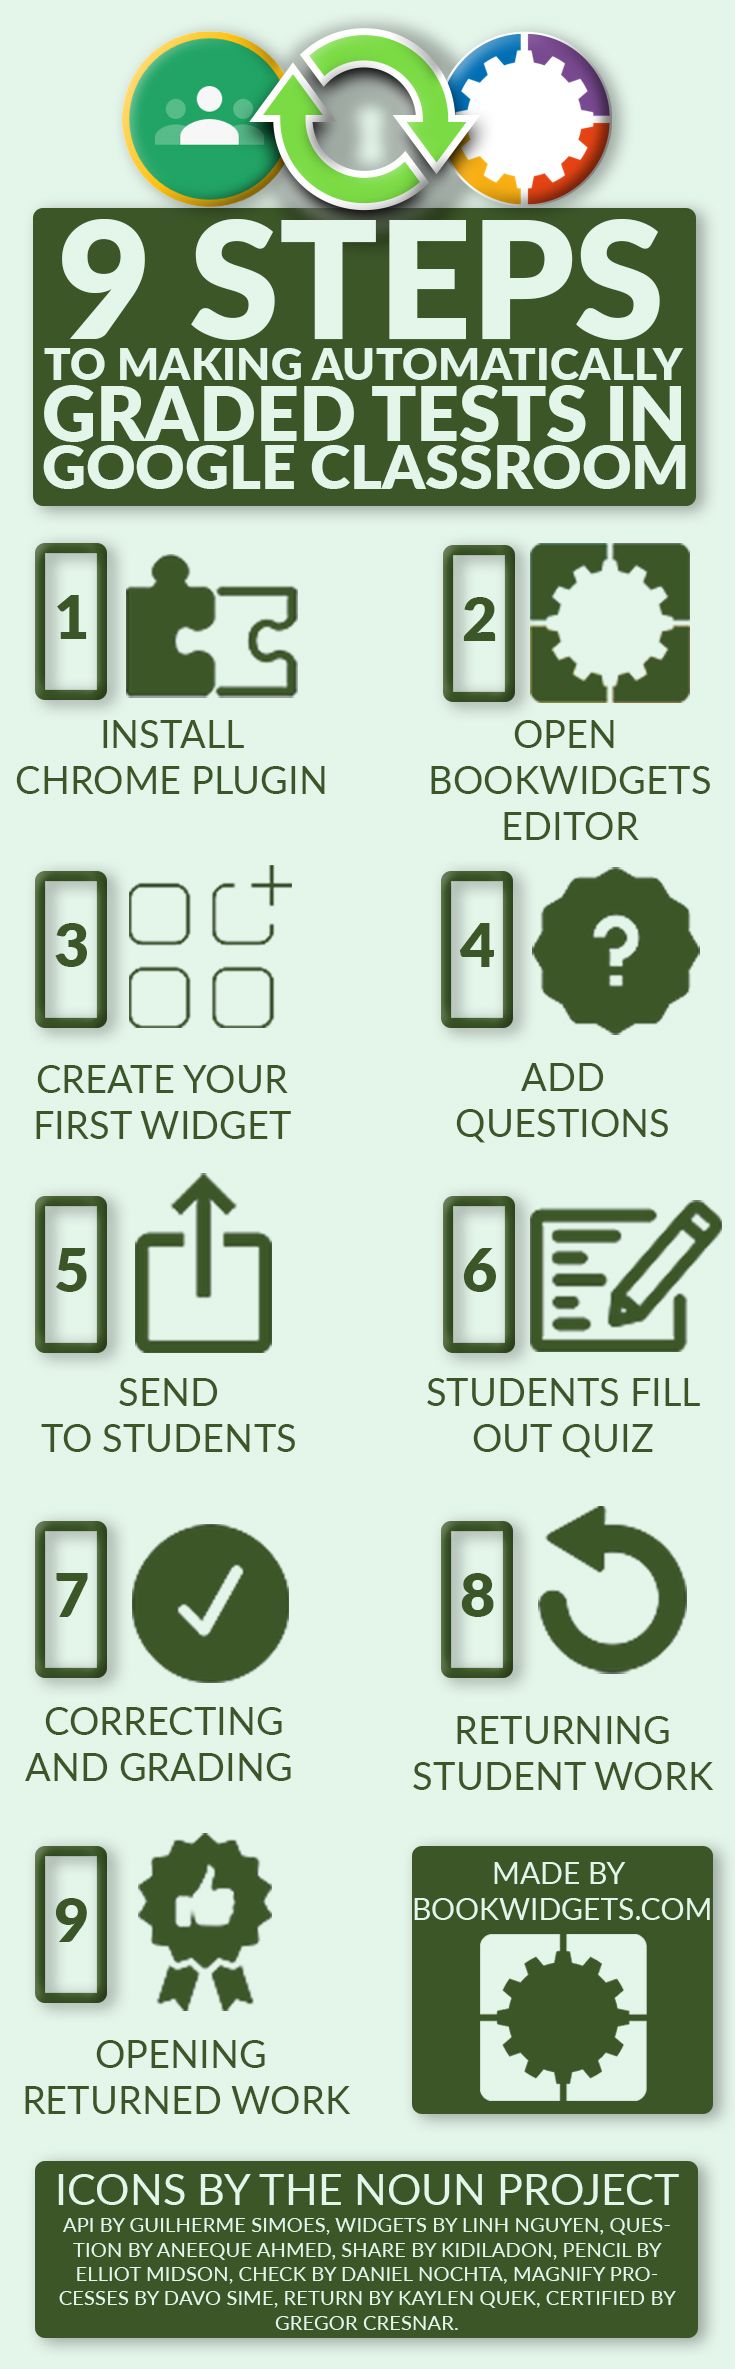 9 Steps to making automatically graded quizzes in Google Classroom